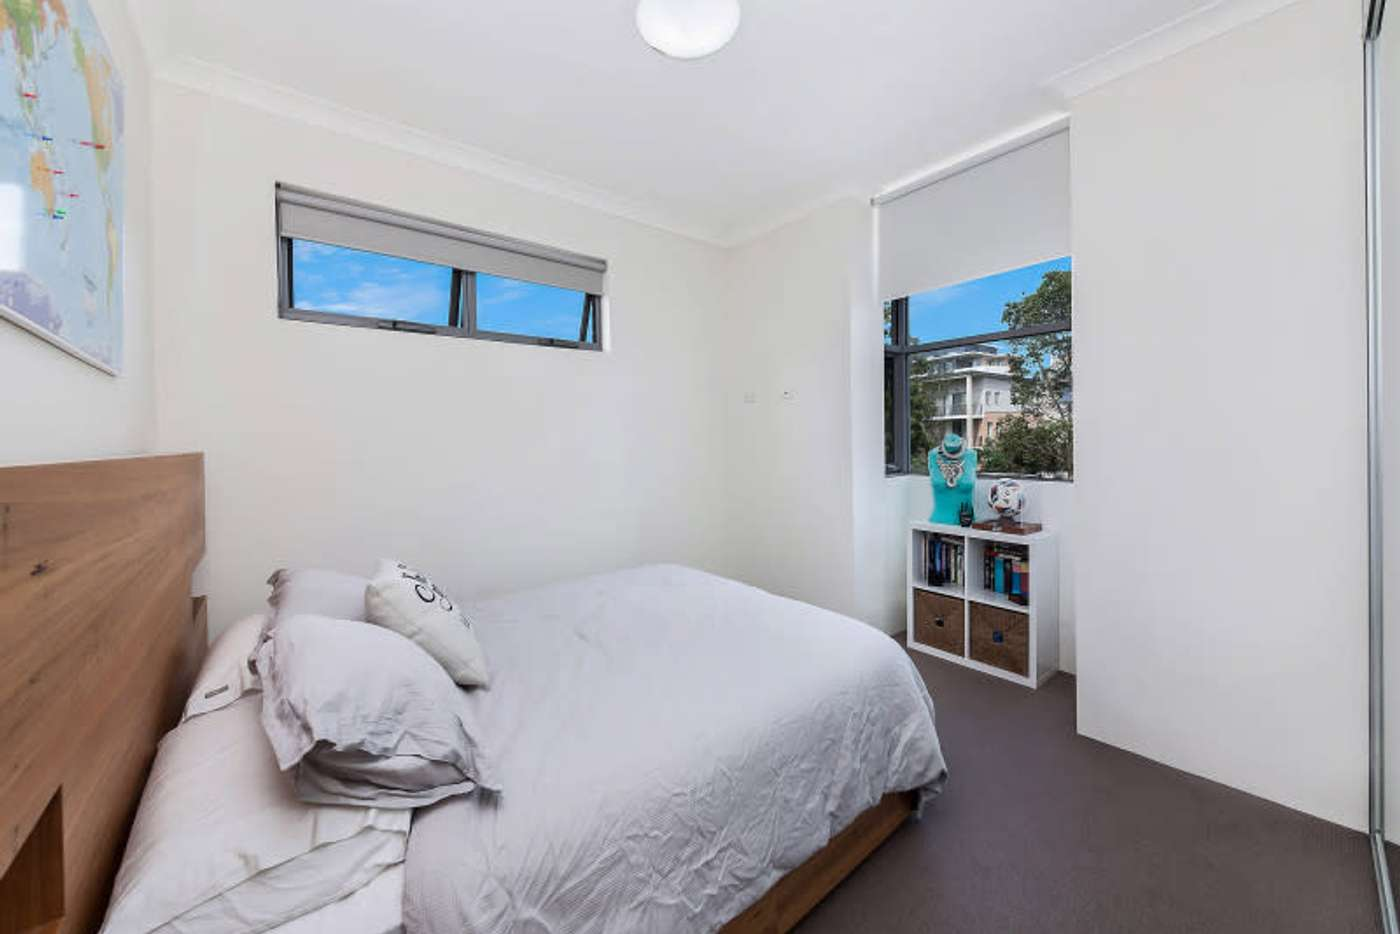 Sixth view of Homely apartment listing, 12/23-27 Dressler Court, Merrylands NSW 2160